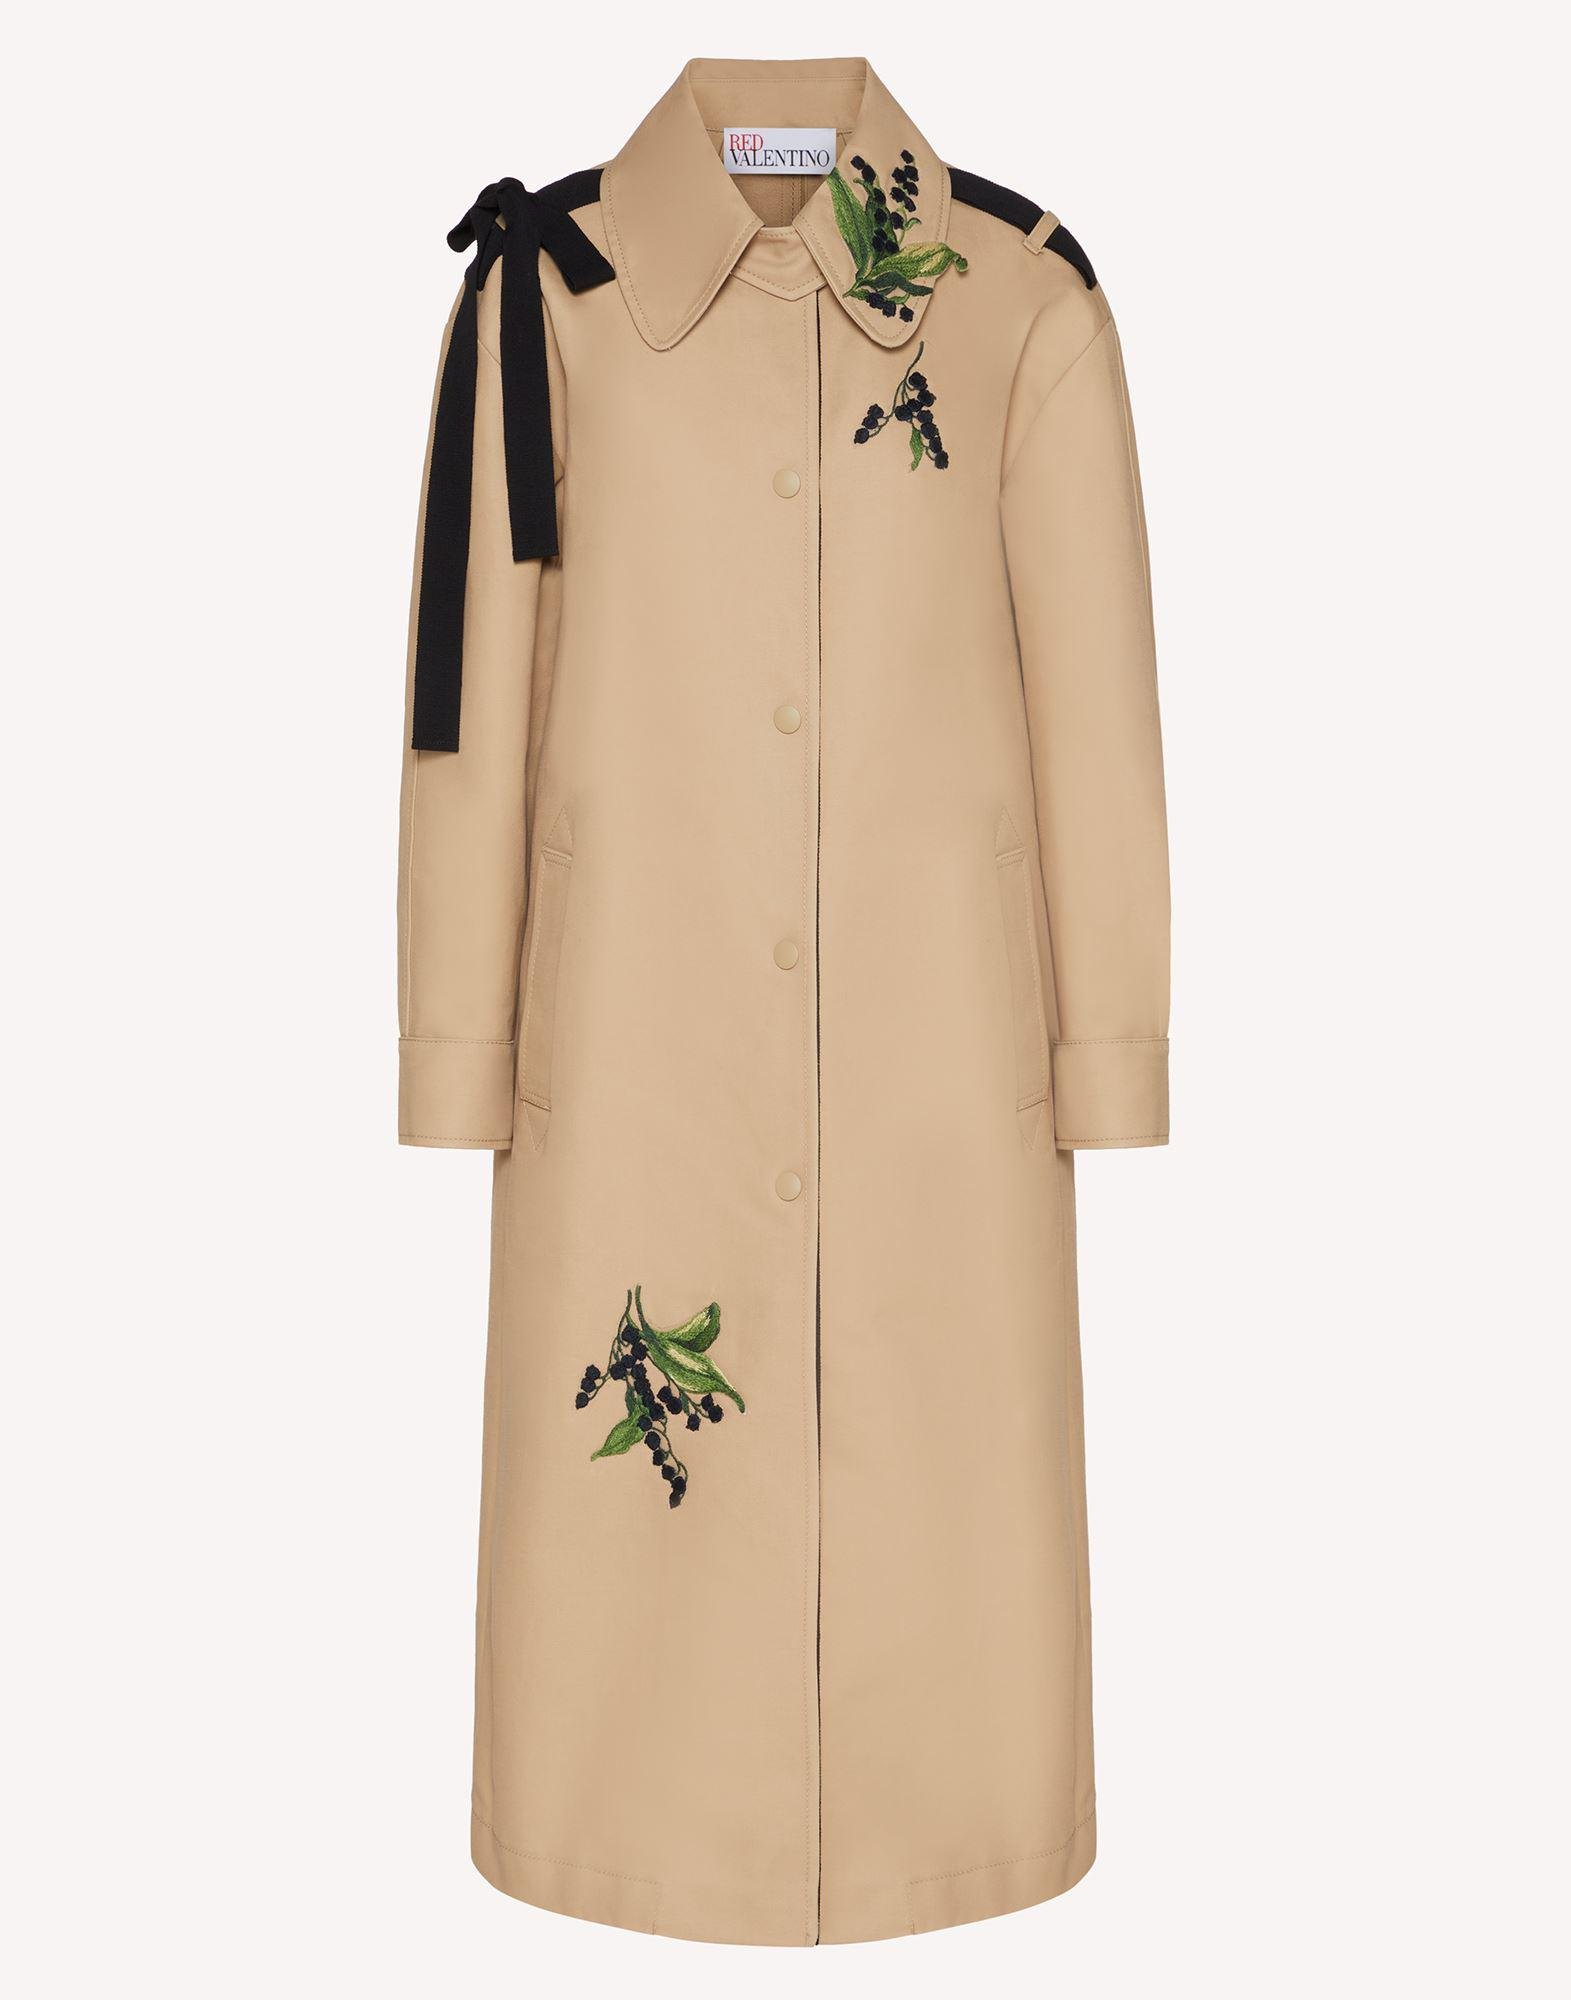 MAY LILY EMBROIDERED TRENCH COAT WITH BOW DETAIL 4